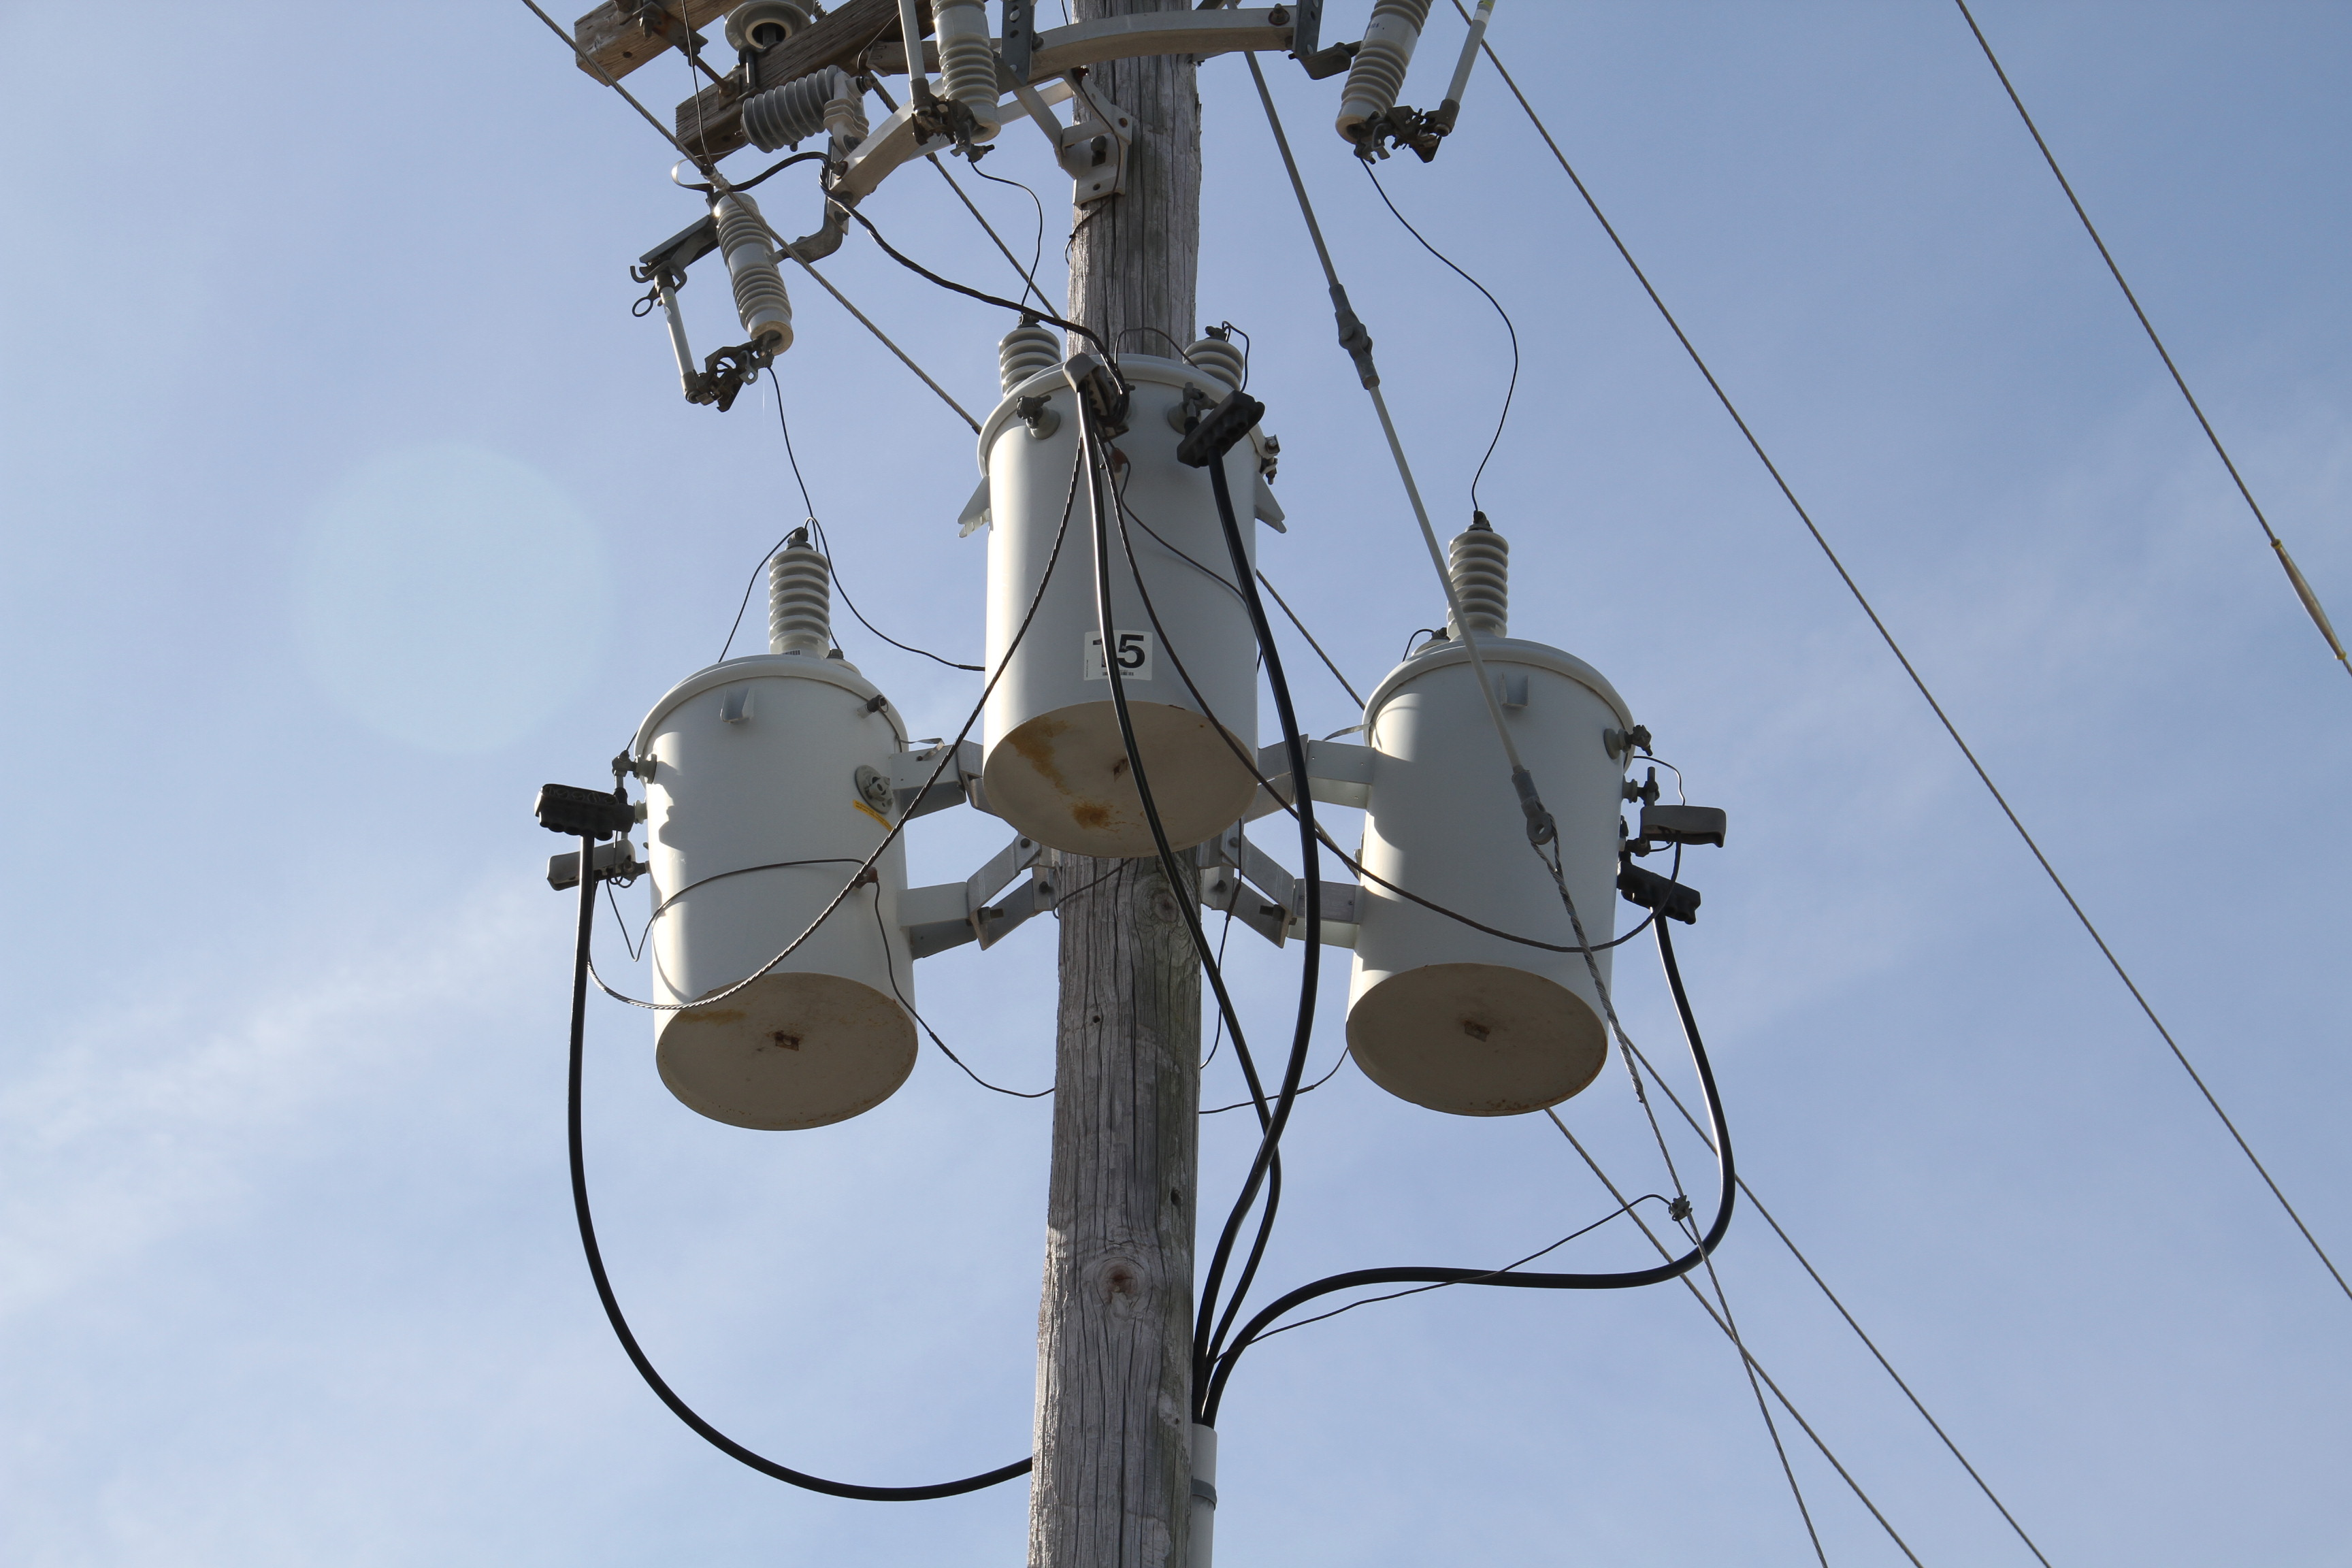 Three Phase Transformers On Pole With Light Blue Sky